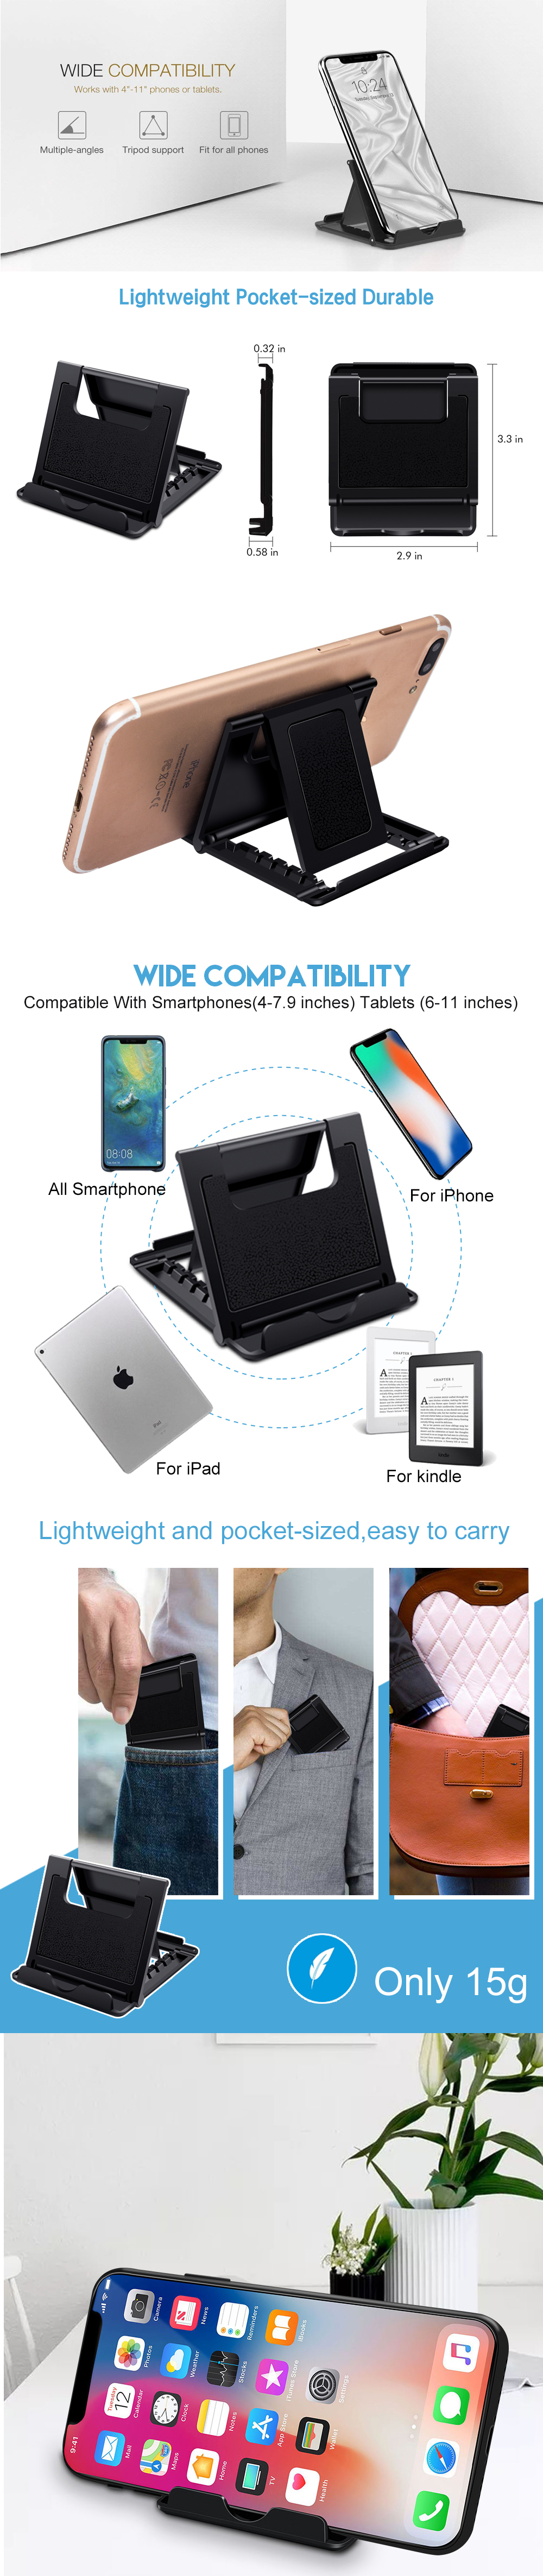 Ascromy-Universal-Cell-Phone-Stand-Holder-For-iPhone-XS-Max-8-Samsung-S8-Xiaomi-iPad-Tablet-Mount-Cradle-telefon-tutucu-soporte (3)